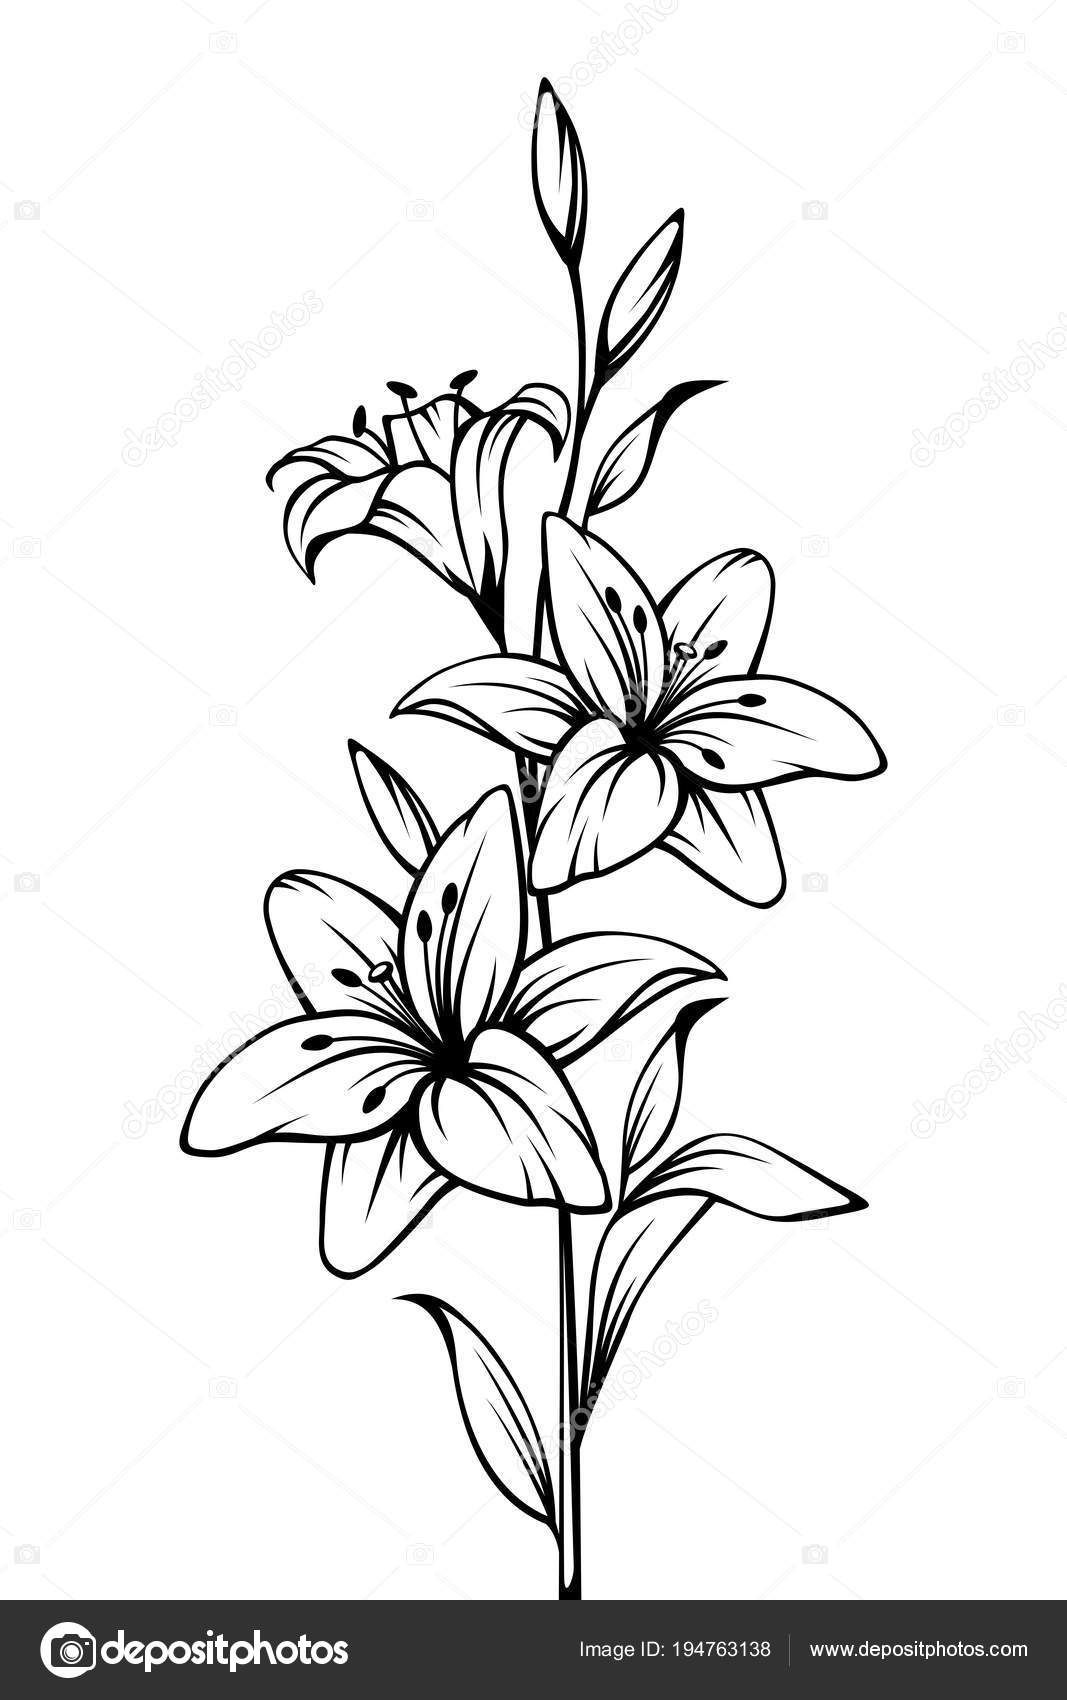 Vector Black White Contour Drawing Lily Pencil Drawings Of Flowers Lilies Drawing Drawings For Boyfriend